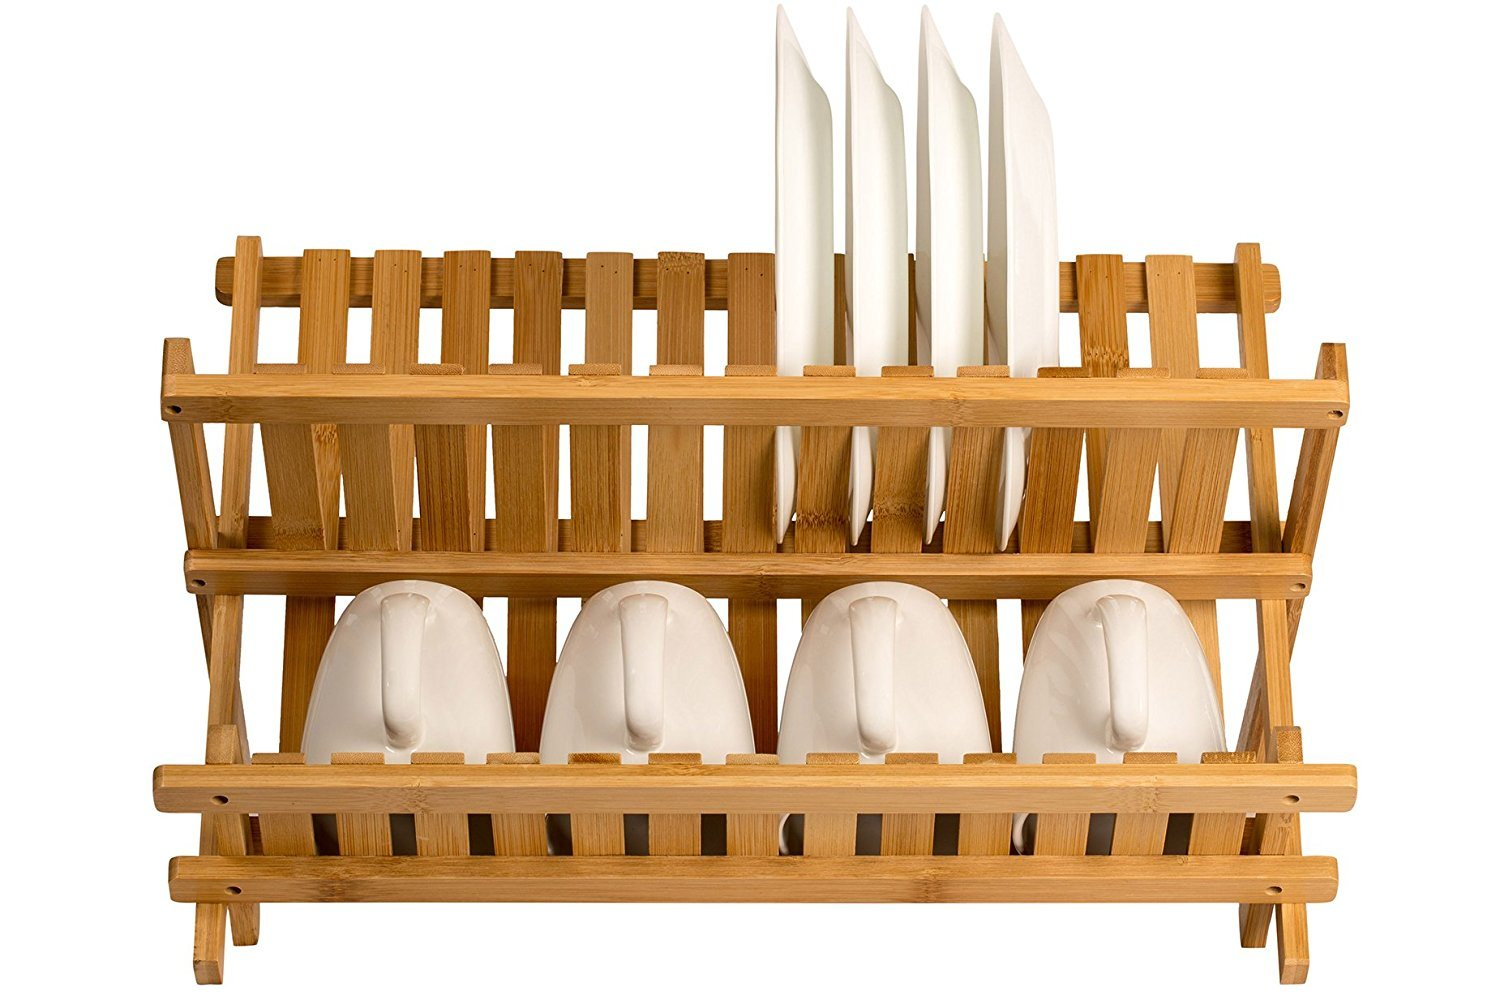 China Wooden Dish Rack Plate Rack Collapsible Compact Dish Drying Rack Bamboo Dish Drainer - China Kitchen Rack Dish Rack  sc 1 st  Huizhou Minghou Houseware Co. Ltd. & China Wooden Dish Rack Plate Rack Collapsible Compact Dish Drying ...